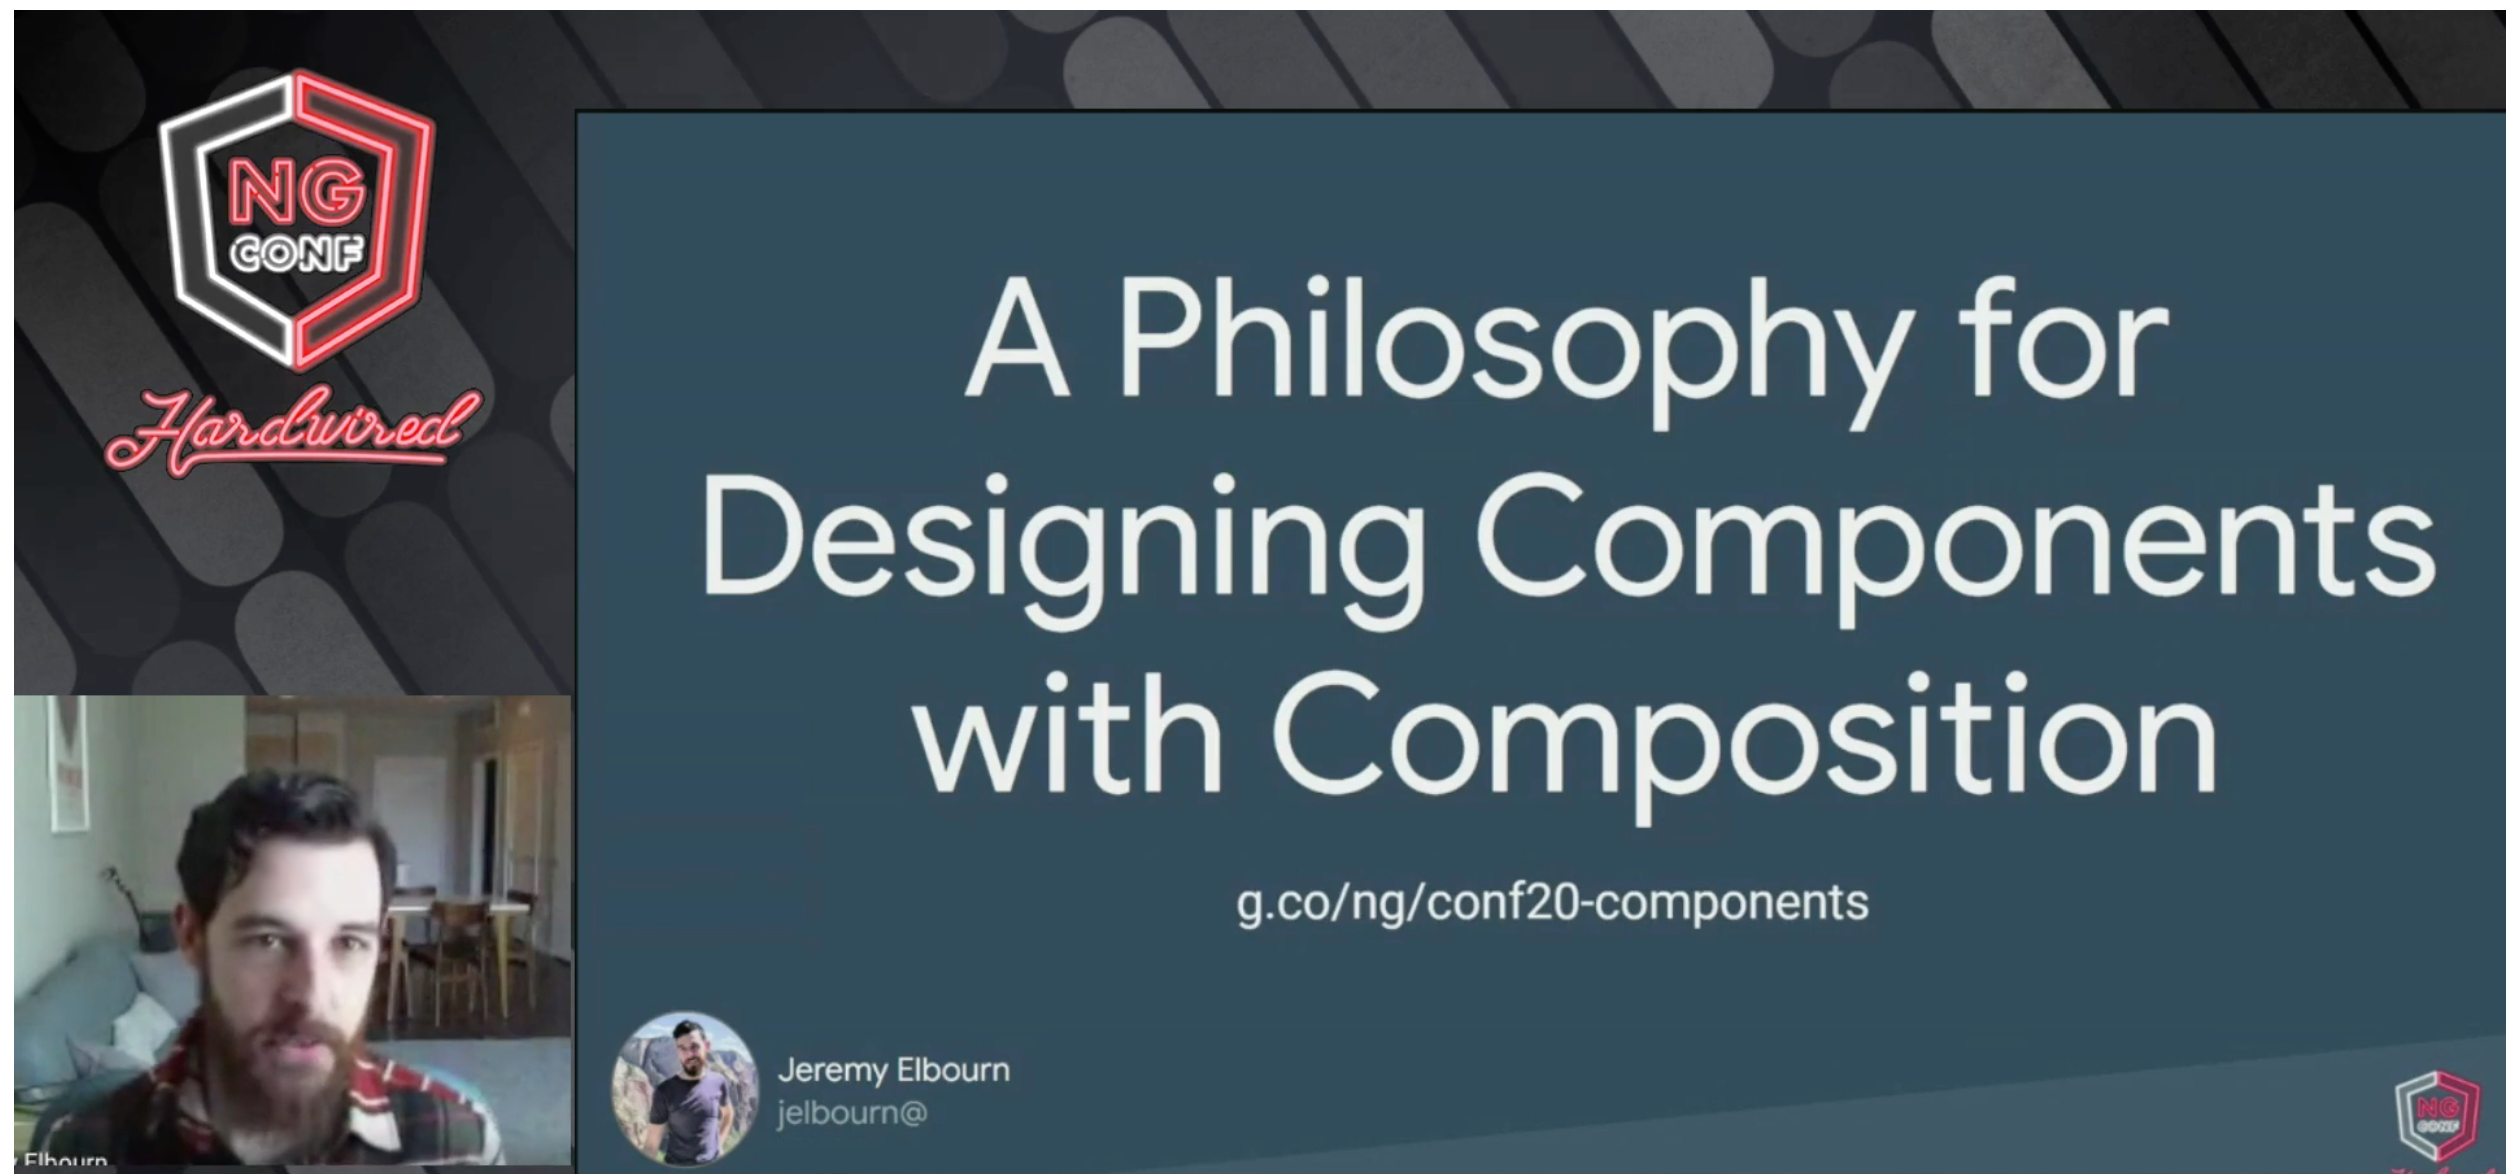 A Philosophy for Designing Components with Composition